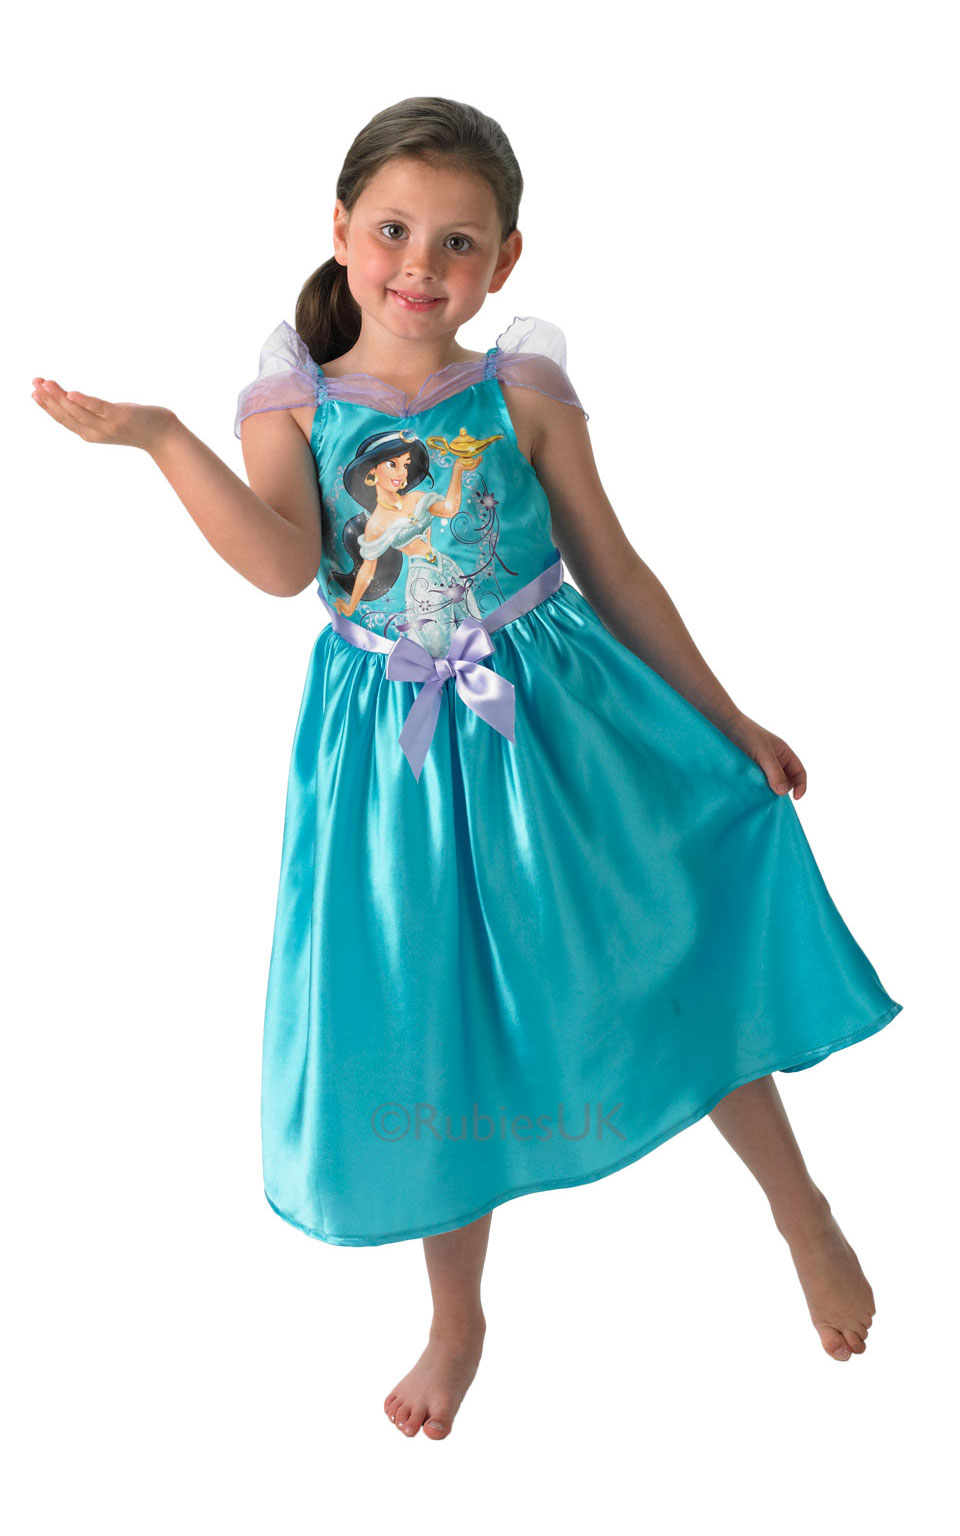 e2ec8980c Disney Princess Girls Fancy Dress Fairytale Book Week Kids Childrens ...